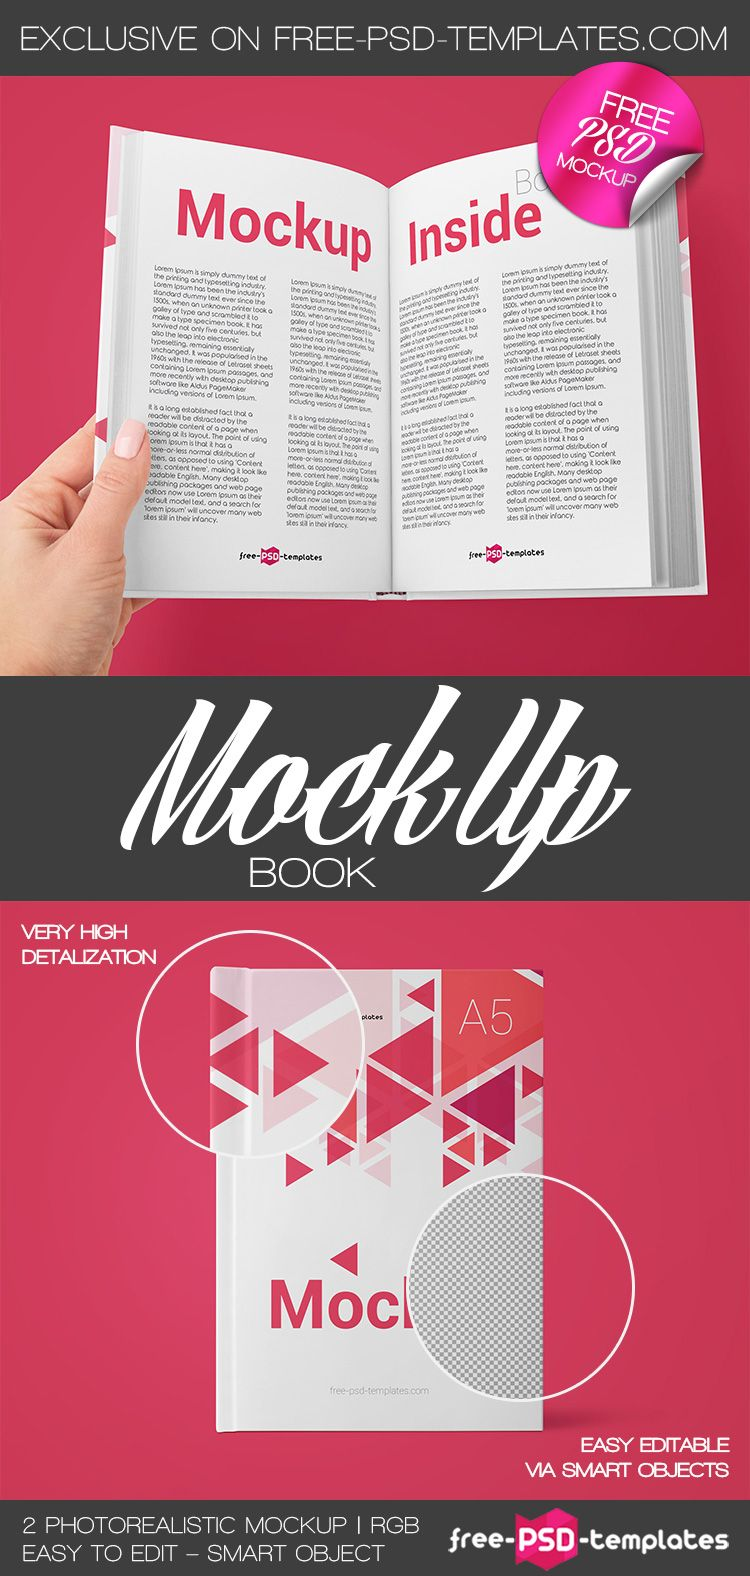 Free Book PSD MockUp Template | Design Inspiration | Mockup, Free